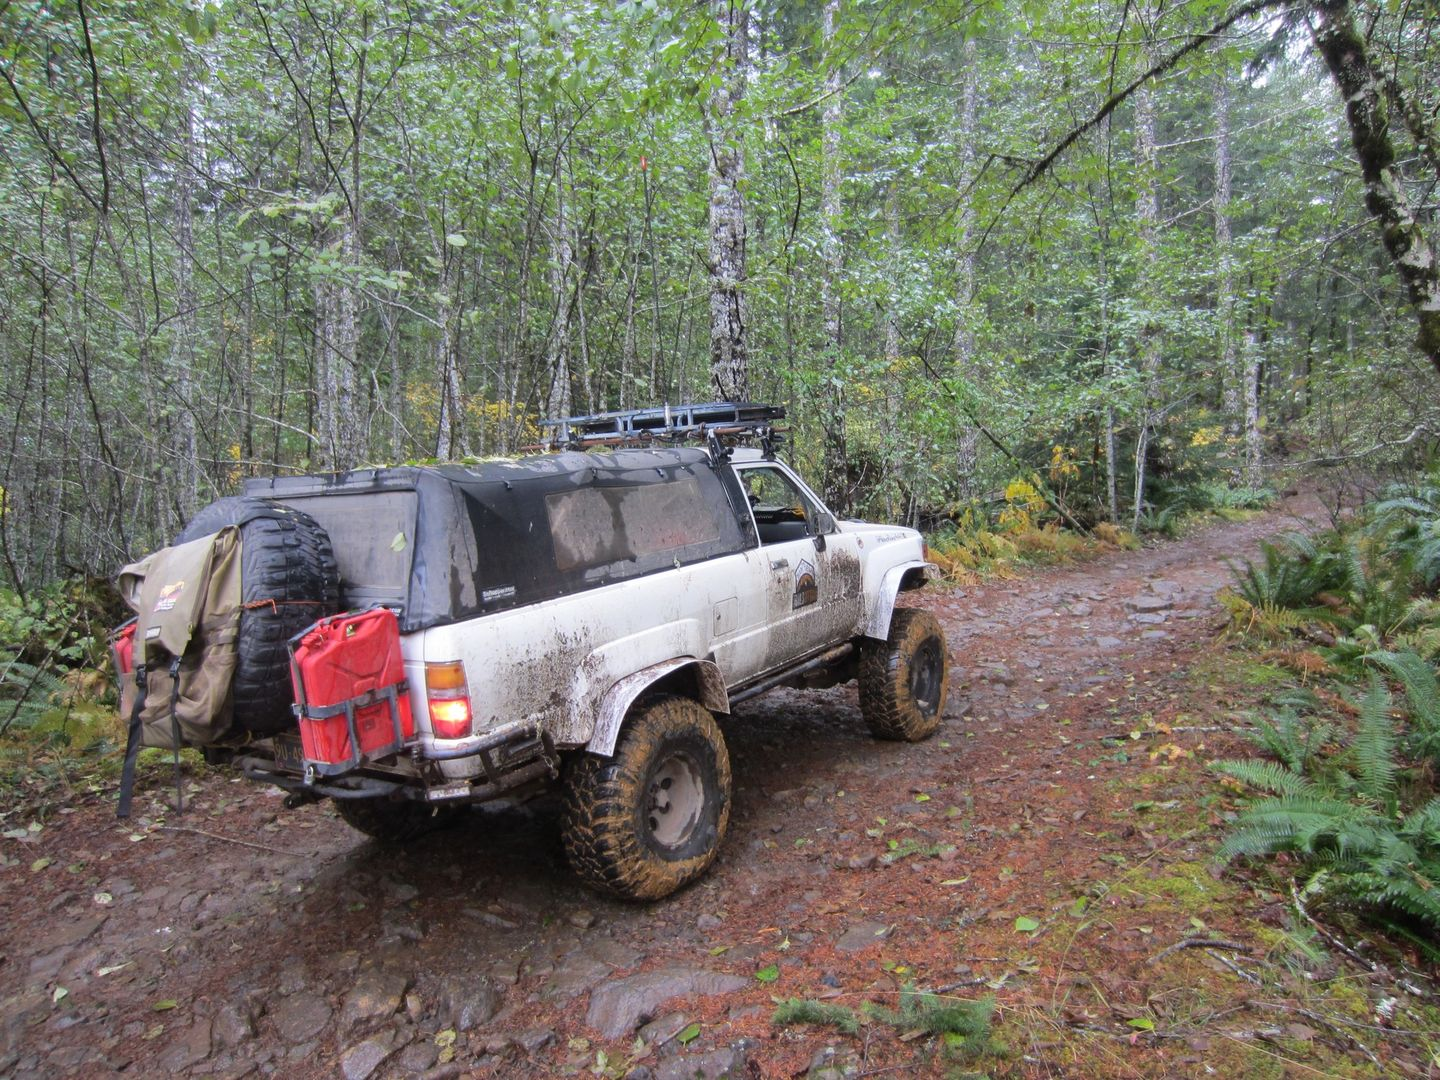 Firebreak Five / Tillamook State Forest - Waypoint 2: Continue Straight for Challenging Section -- Right Goes to Gravel Road